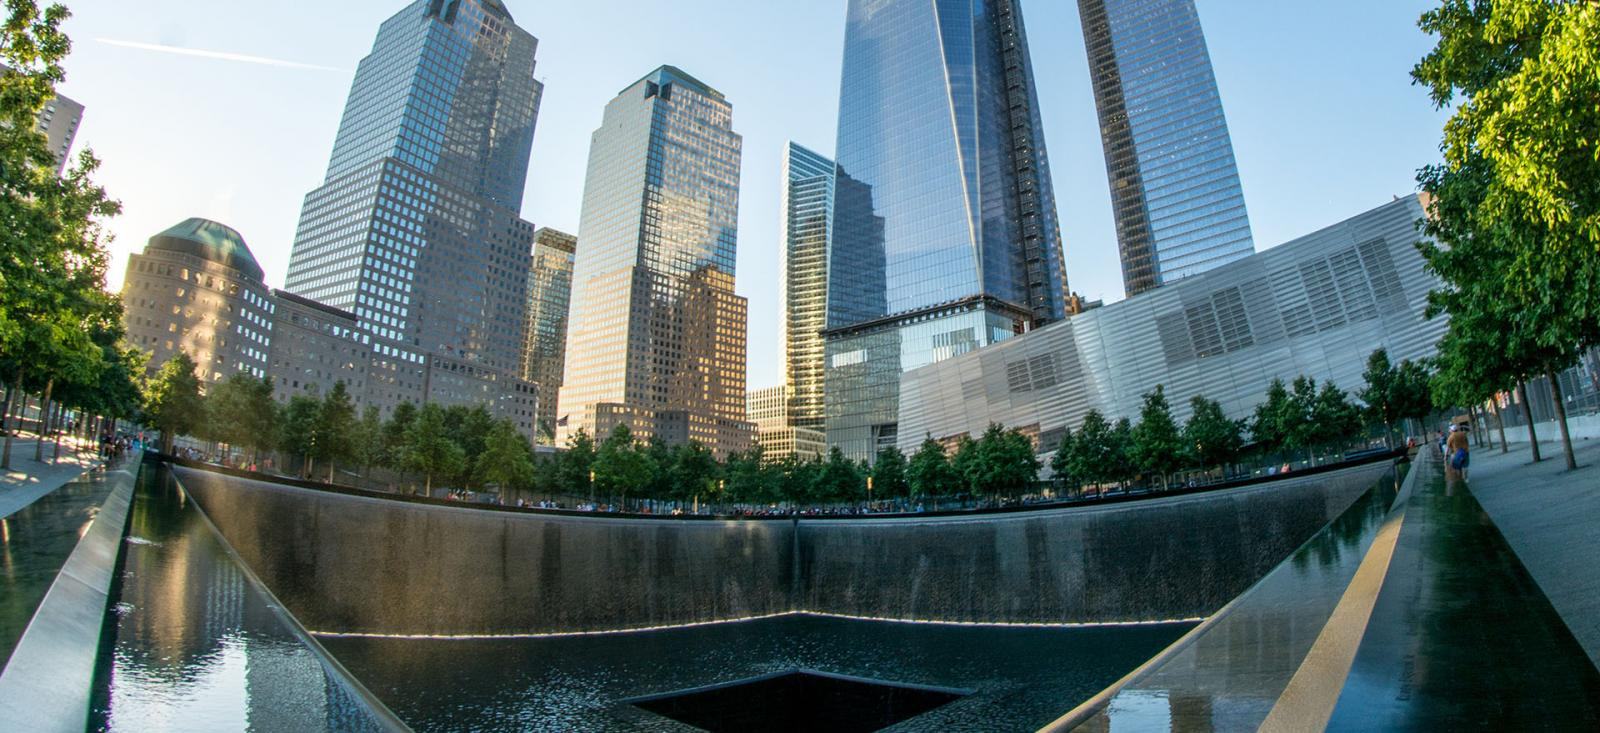 ground zero in new york 9 11 memorial alle touren insider spots. Black Bedroom Furniture Sets. Home Design Ideas